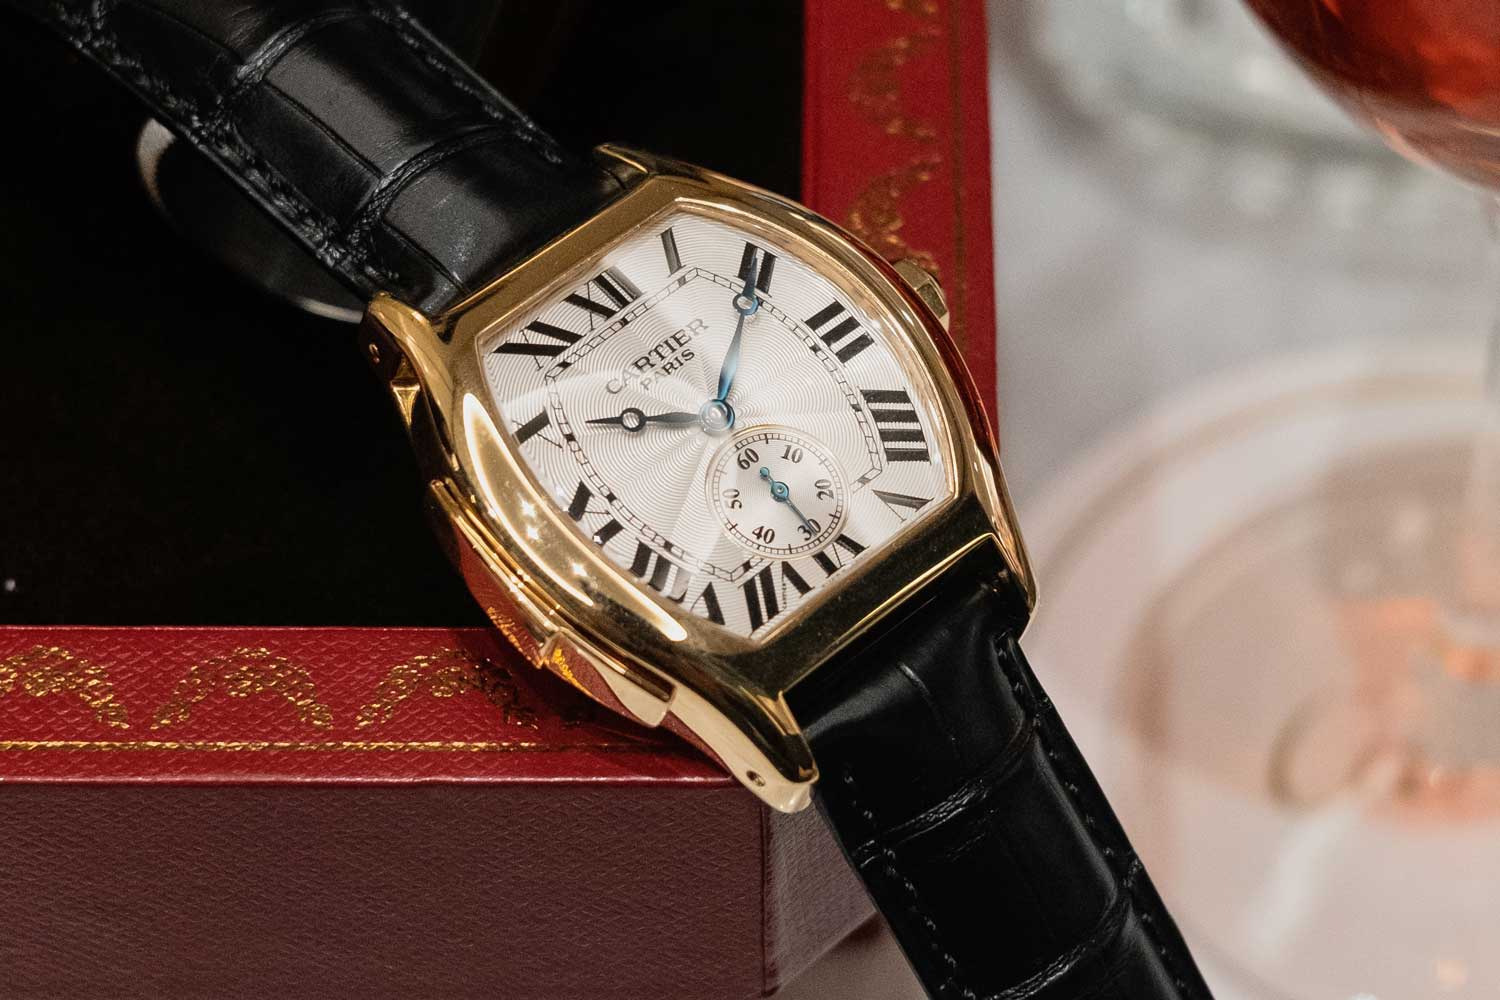 Collection Privée Cartier Paris (CPCP): Tortue Minute Repeater